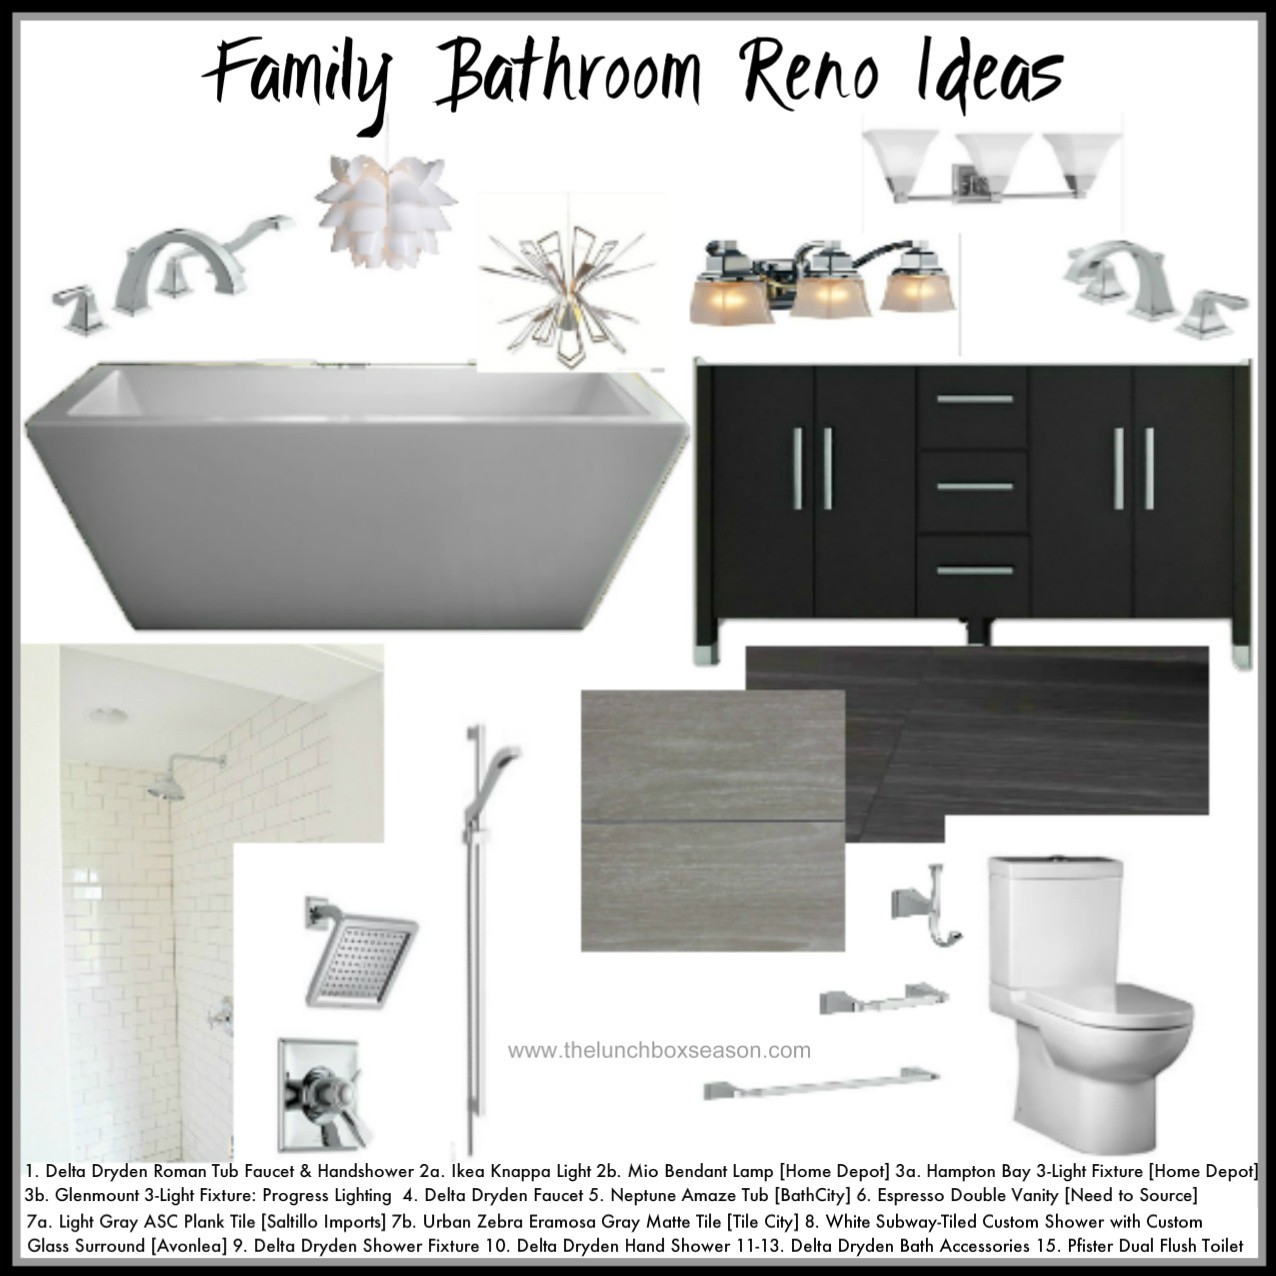 Family Bathroom Reno Ideas from thelunchboxseason dot com